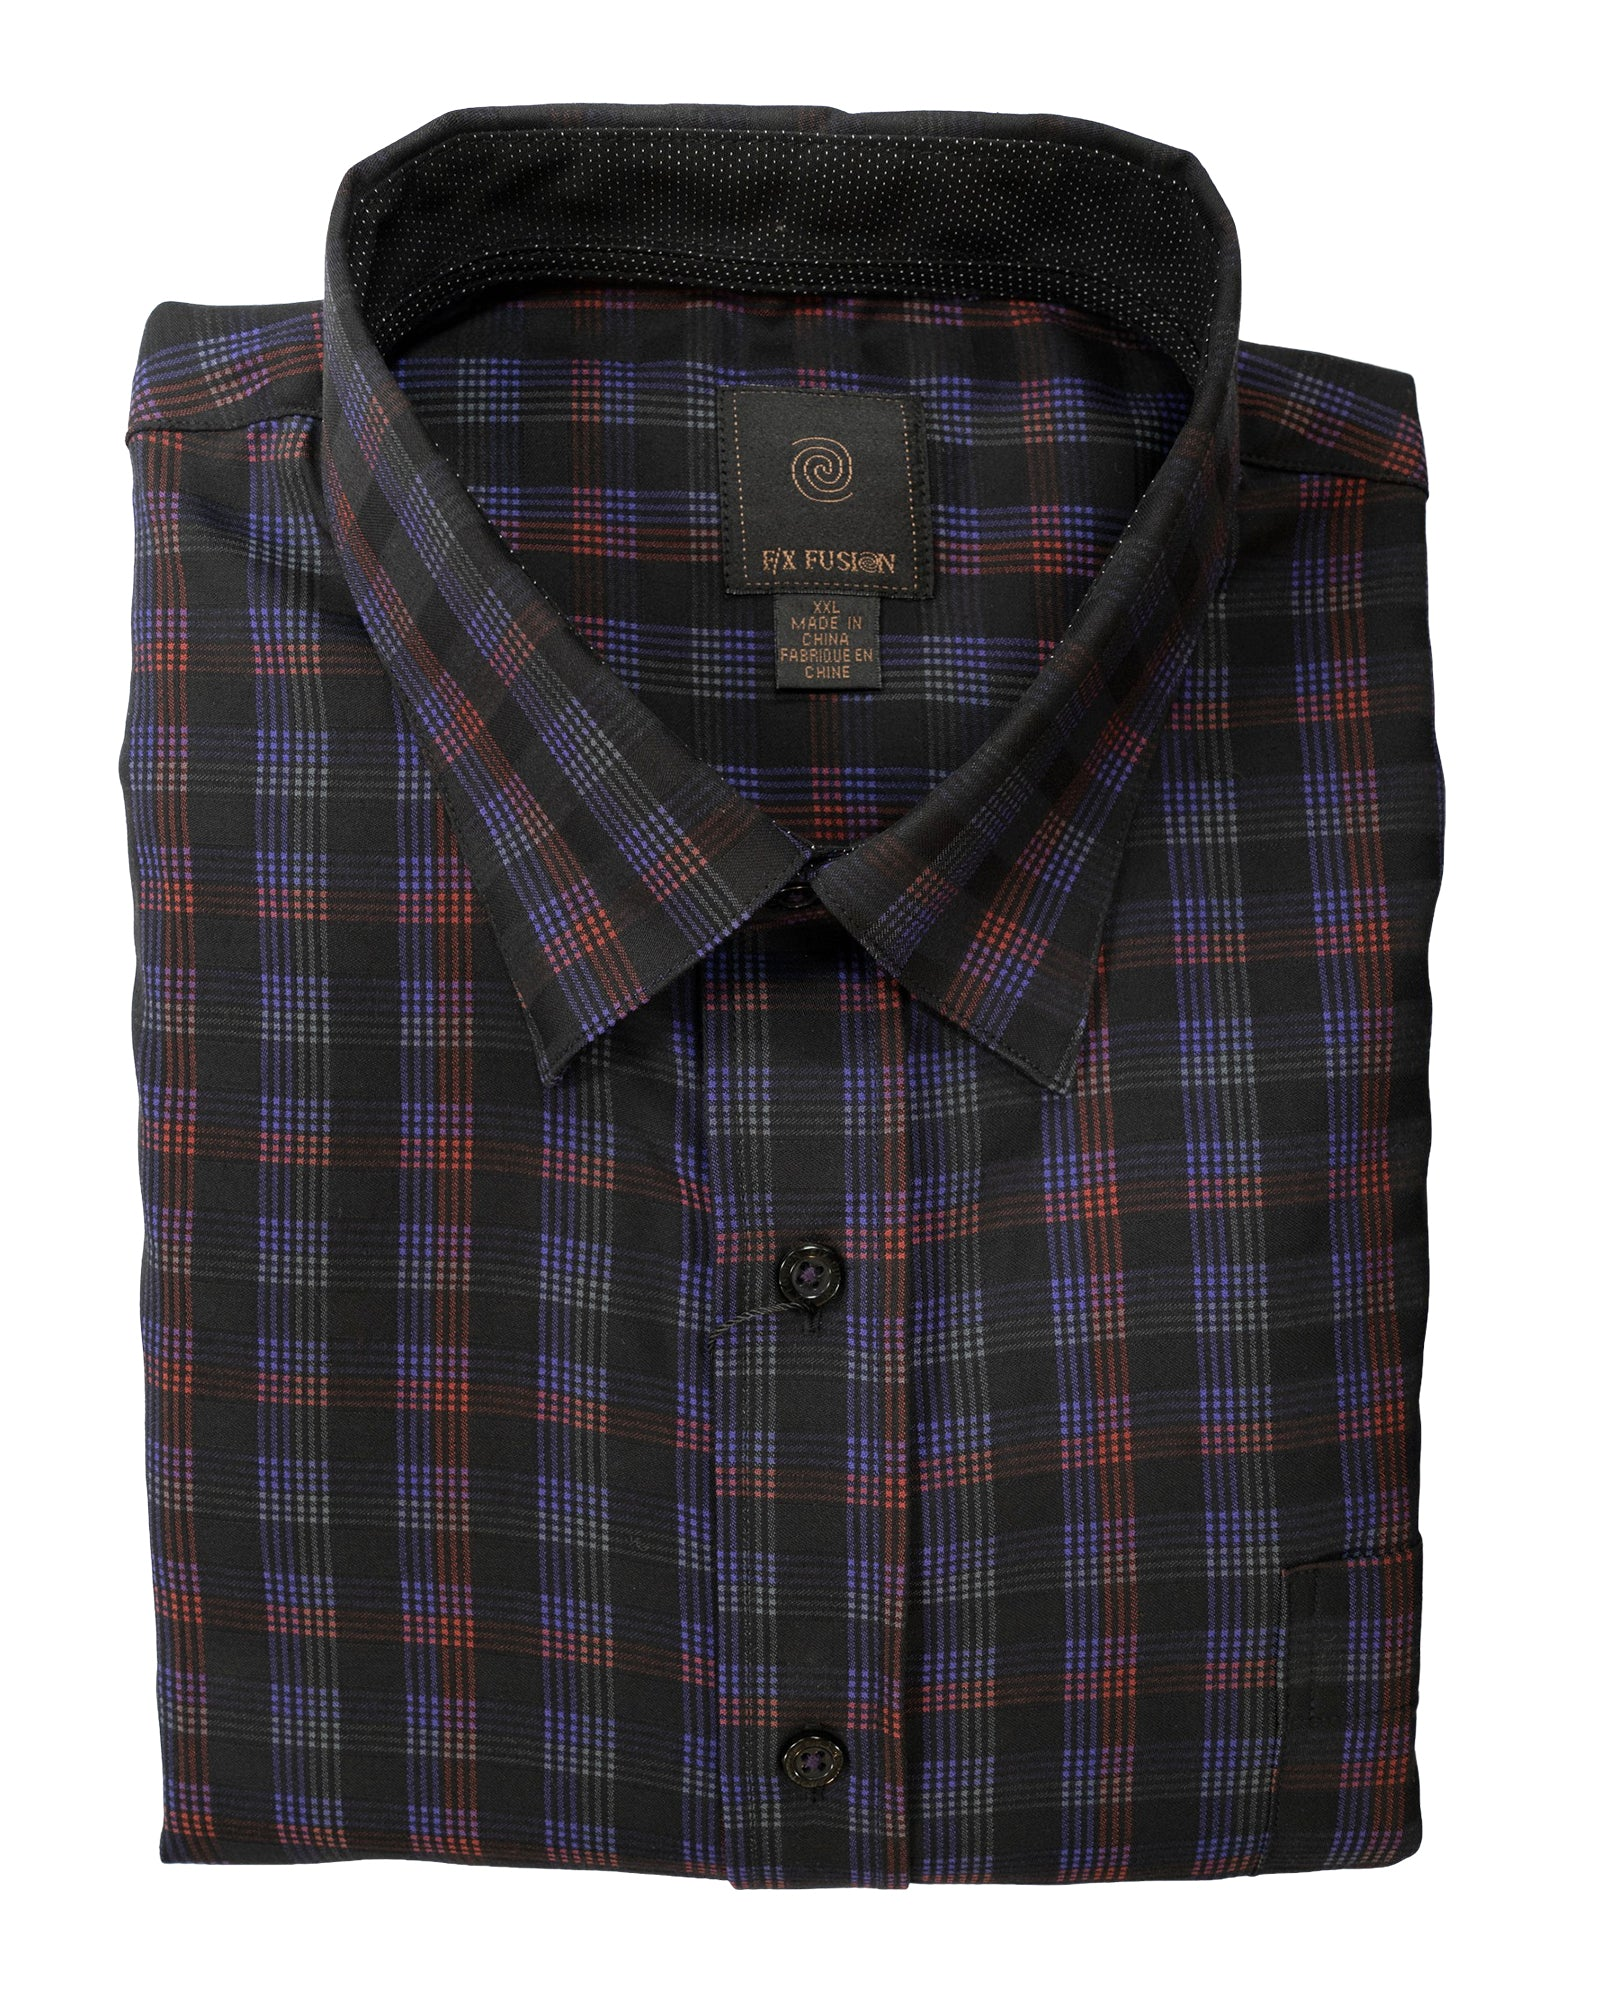 Black Multi-Colored Grid Sport Shirt - Rainwater's Men's Clothing and Tuxedo Rental